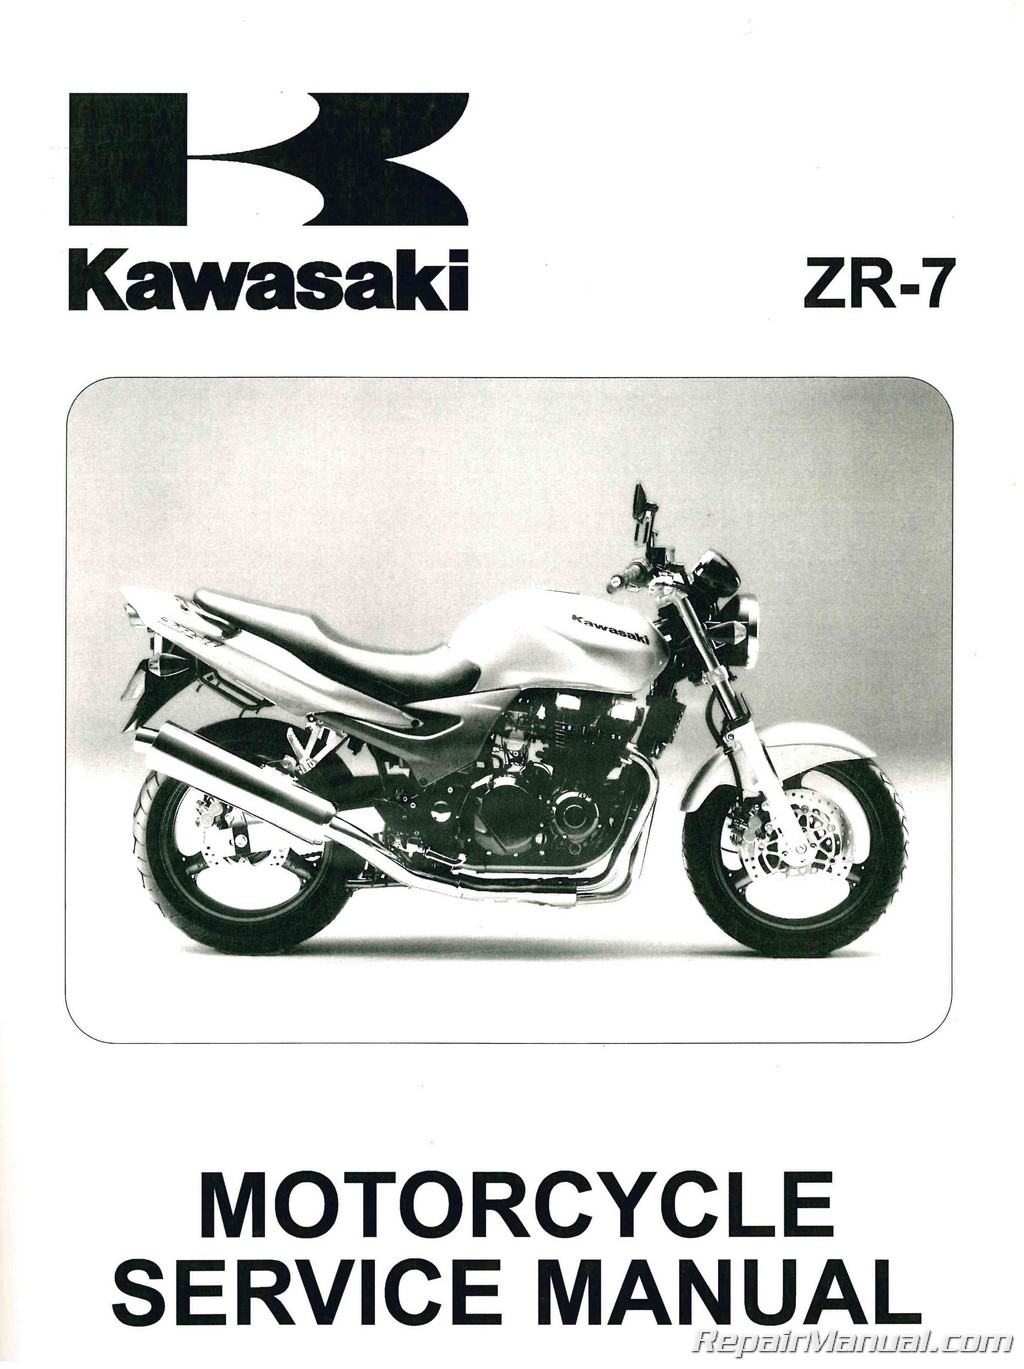 Kawasaki Zr 7 Wiring Diagram Online 2004 Polaris Sportsman 400 Zr750f Motorcycle Manual 1999 2003 7s